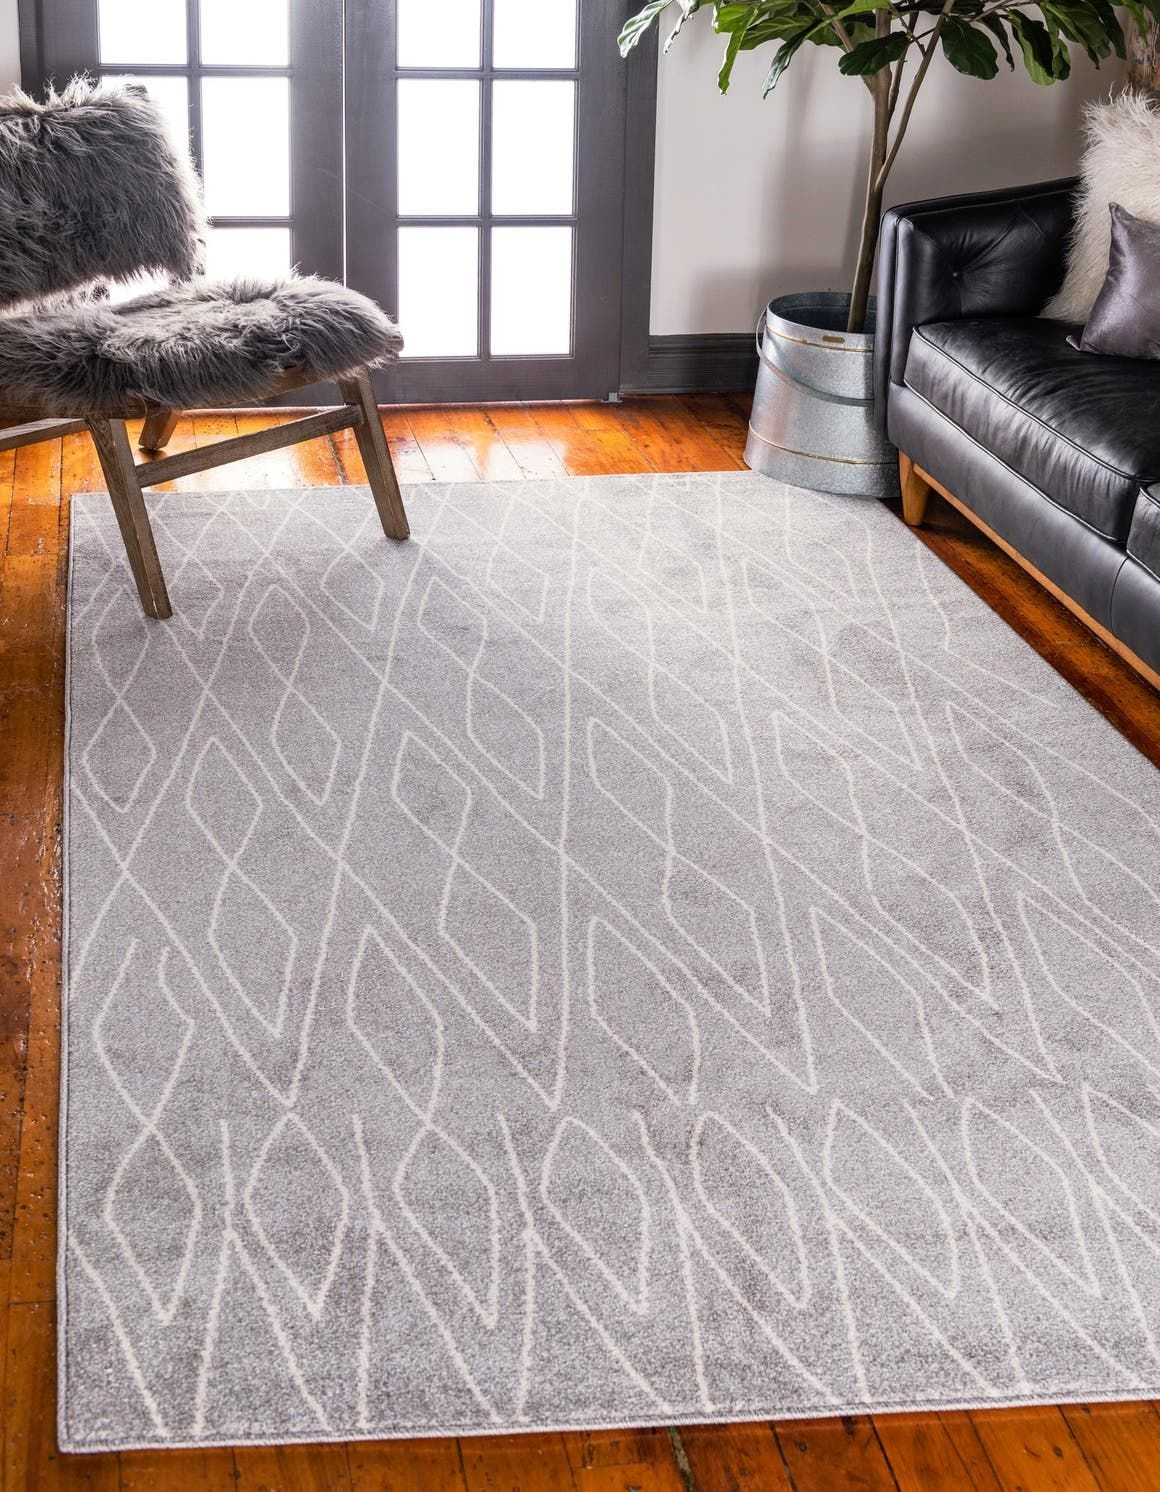 Pleasing Room Size Rugs 9x12 On Wonderful Gray Tangier area Rug On Room Size Rugs 9x12